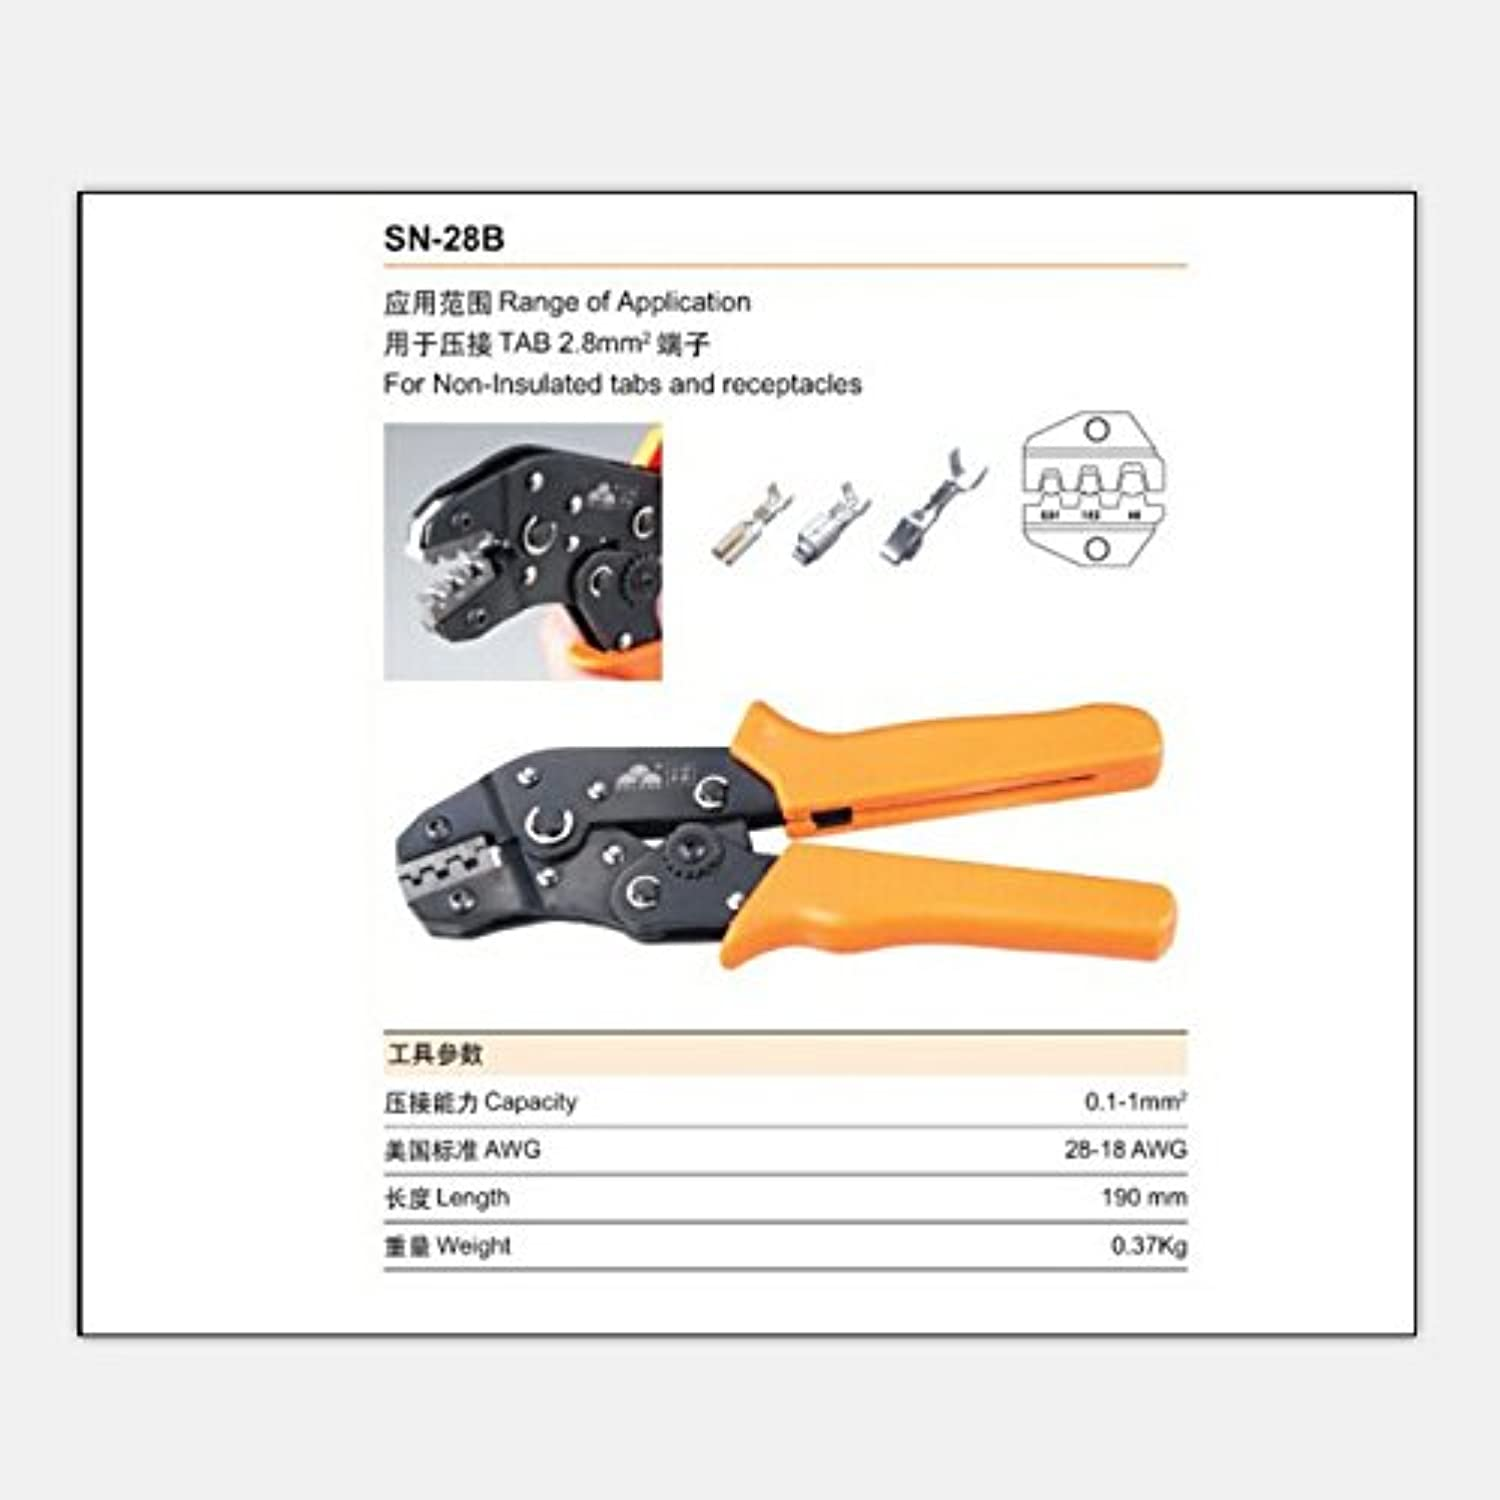 New 1Pc SN-28B 0.1-1 mm2 Crimping Tools for Wire end Sleeves Multi-Function Crimping Pliers Tube Crimping Pliers